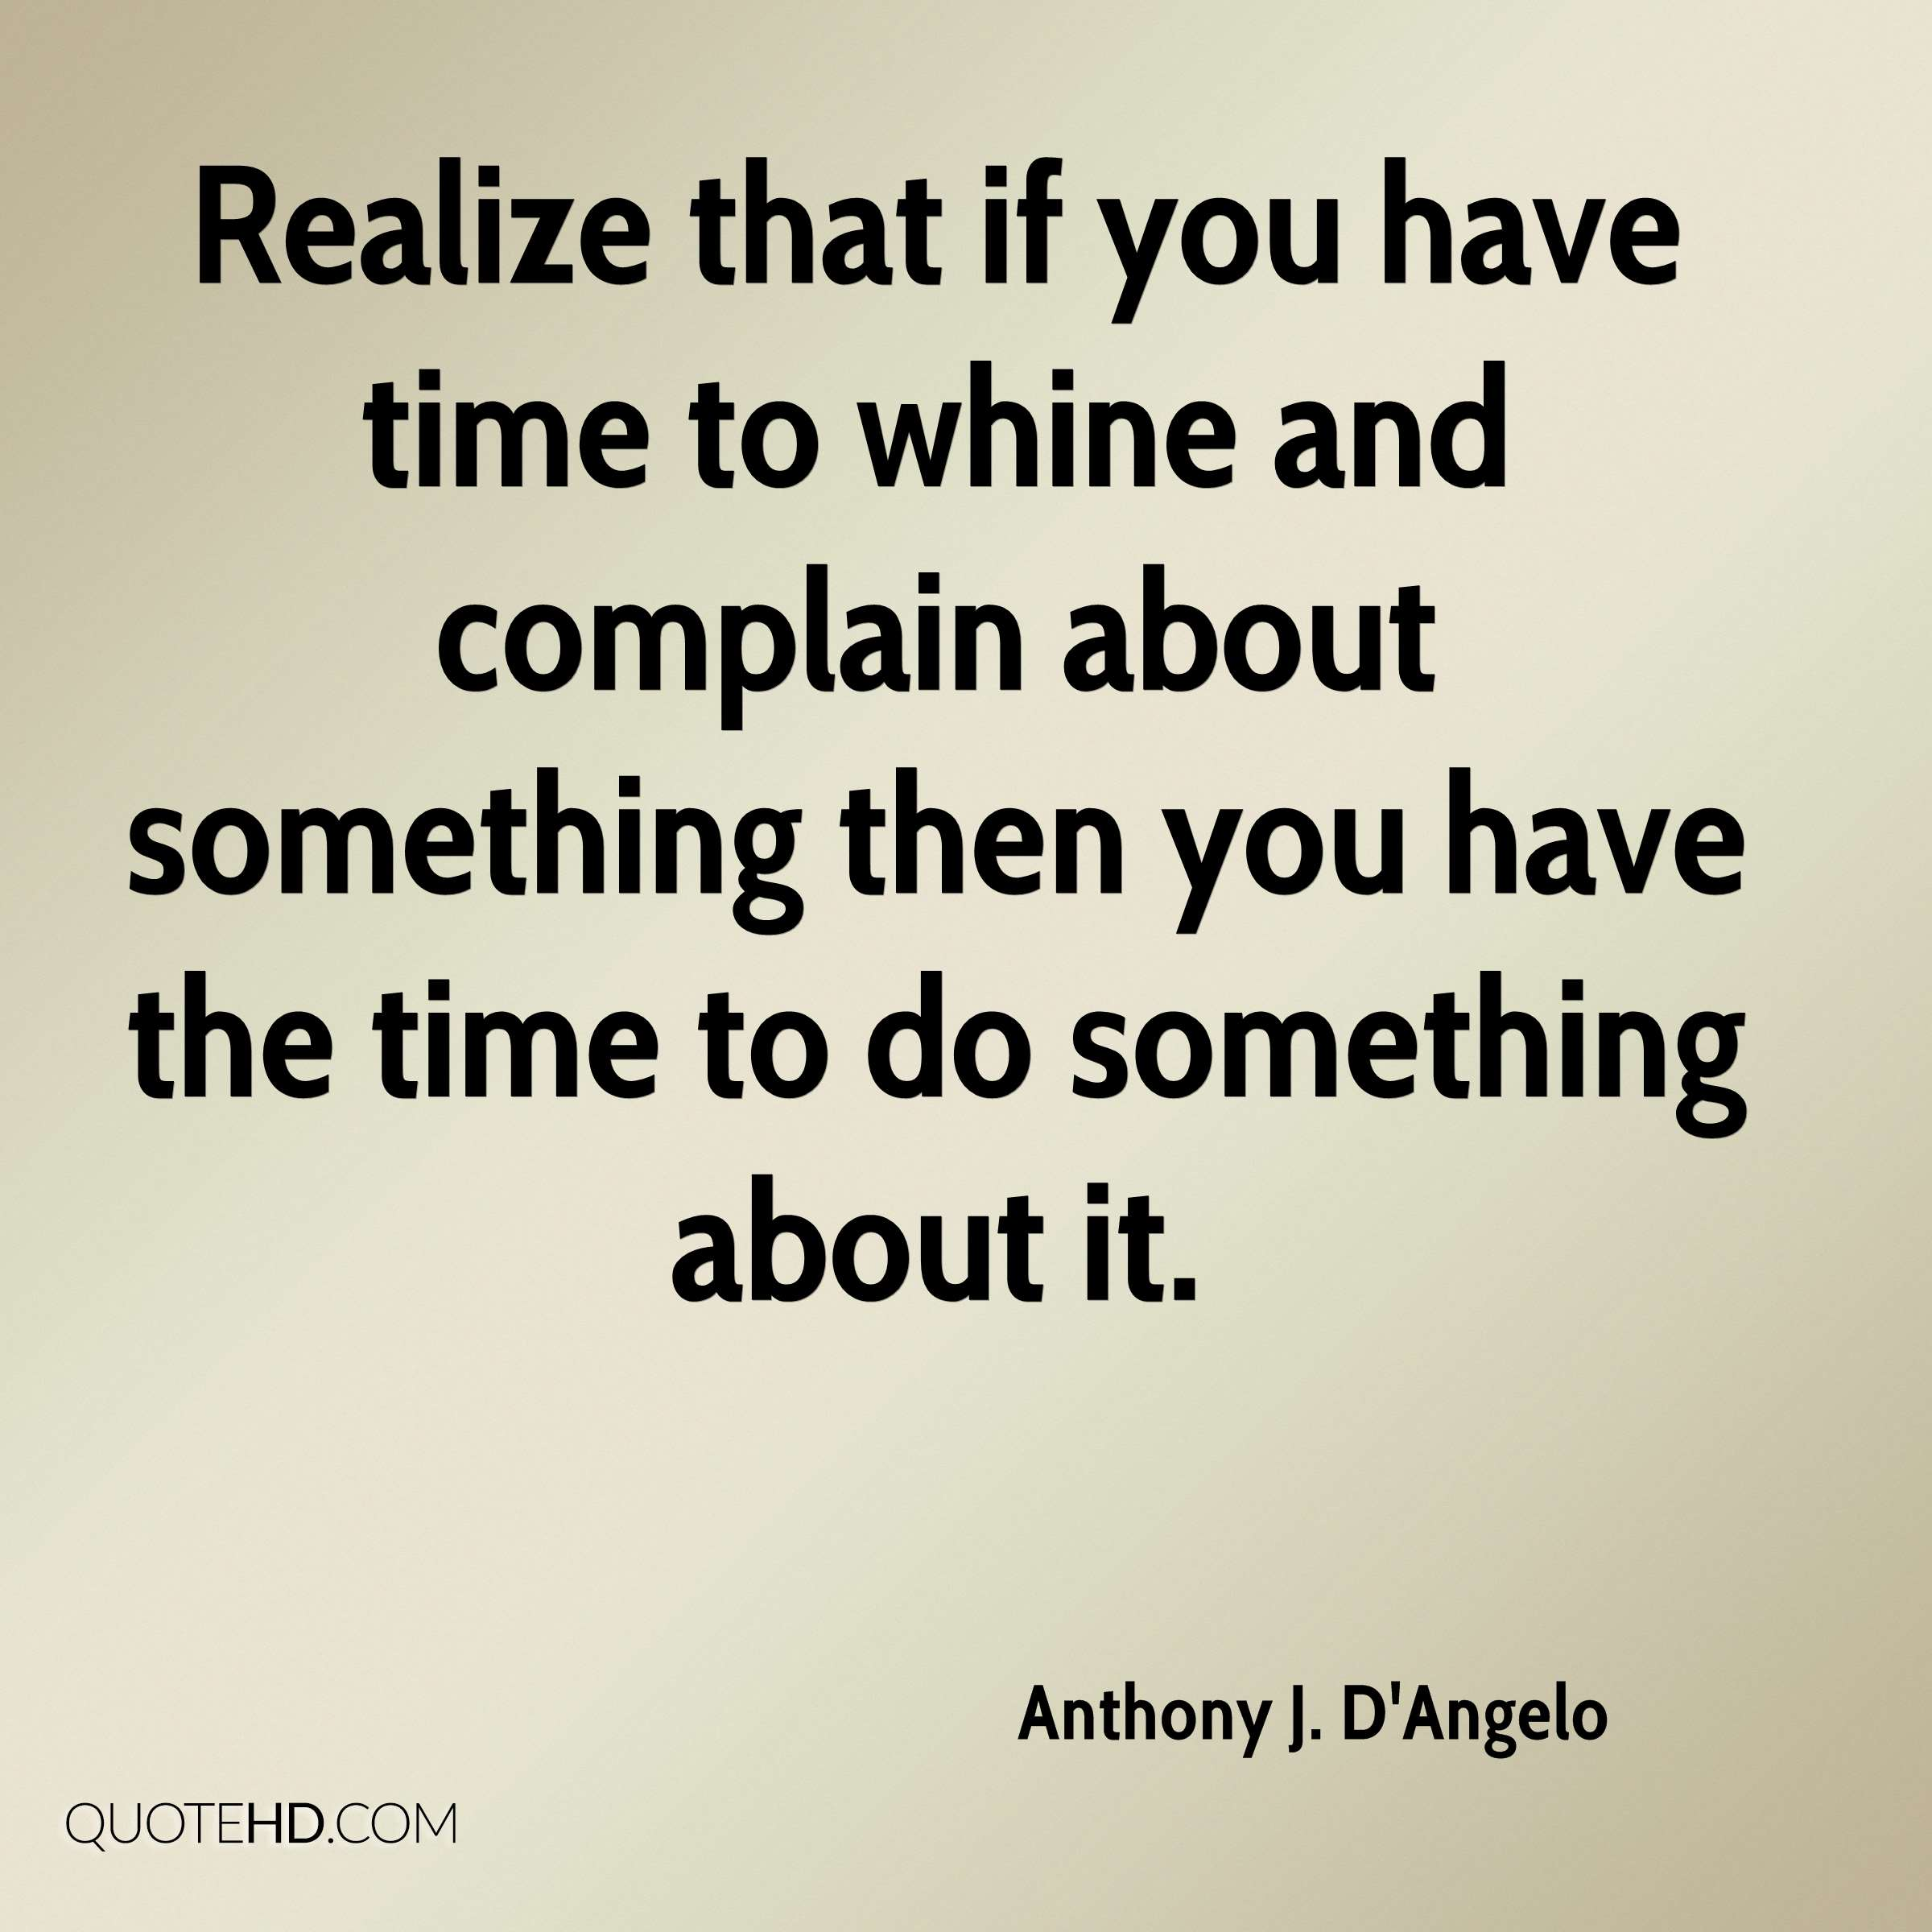 Realize that if you have time to whine and complain about something then you have the time to do something about it.